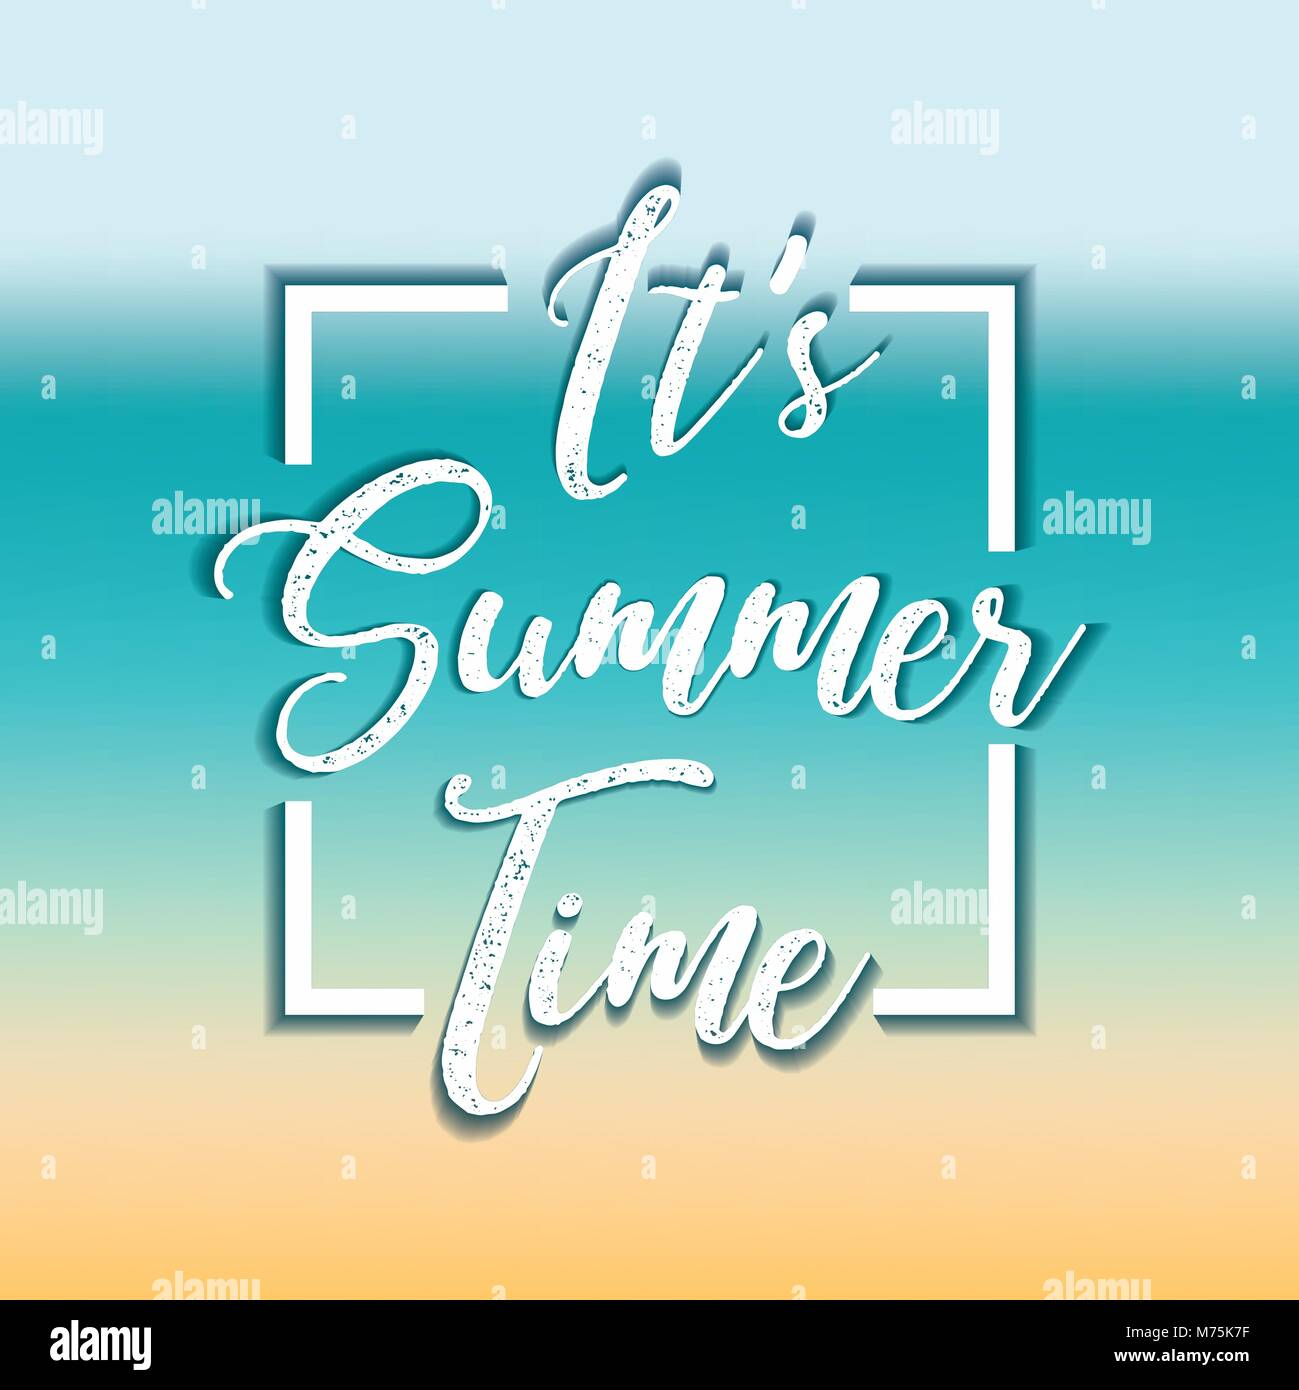 Summer time design over colorful background, vector illustration - Stock Vector